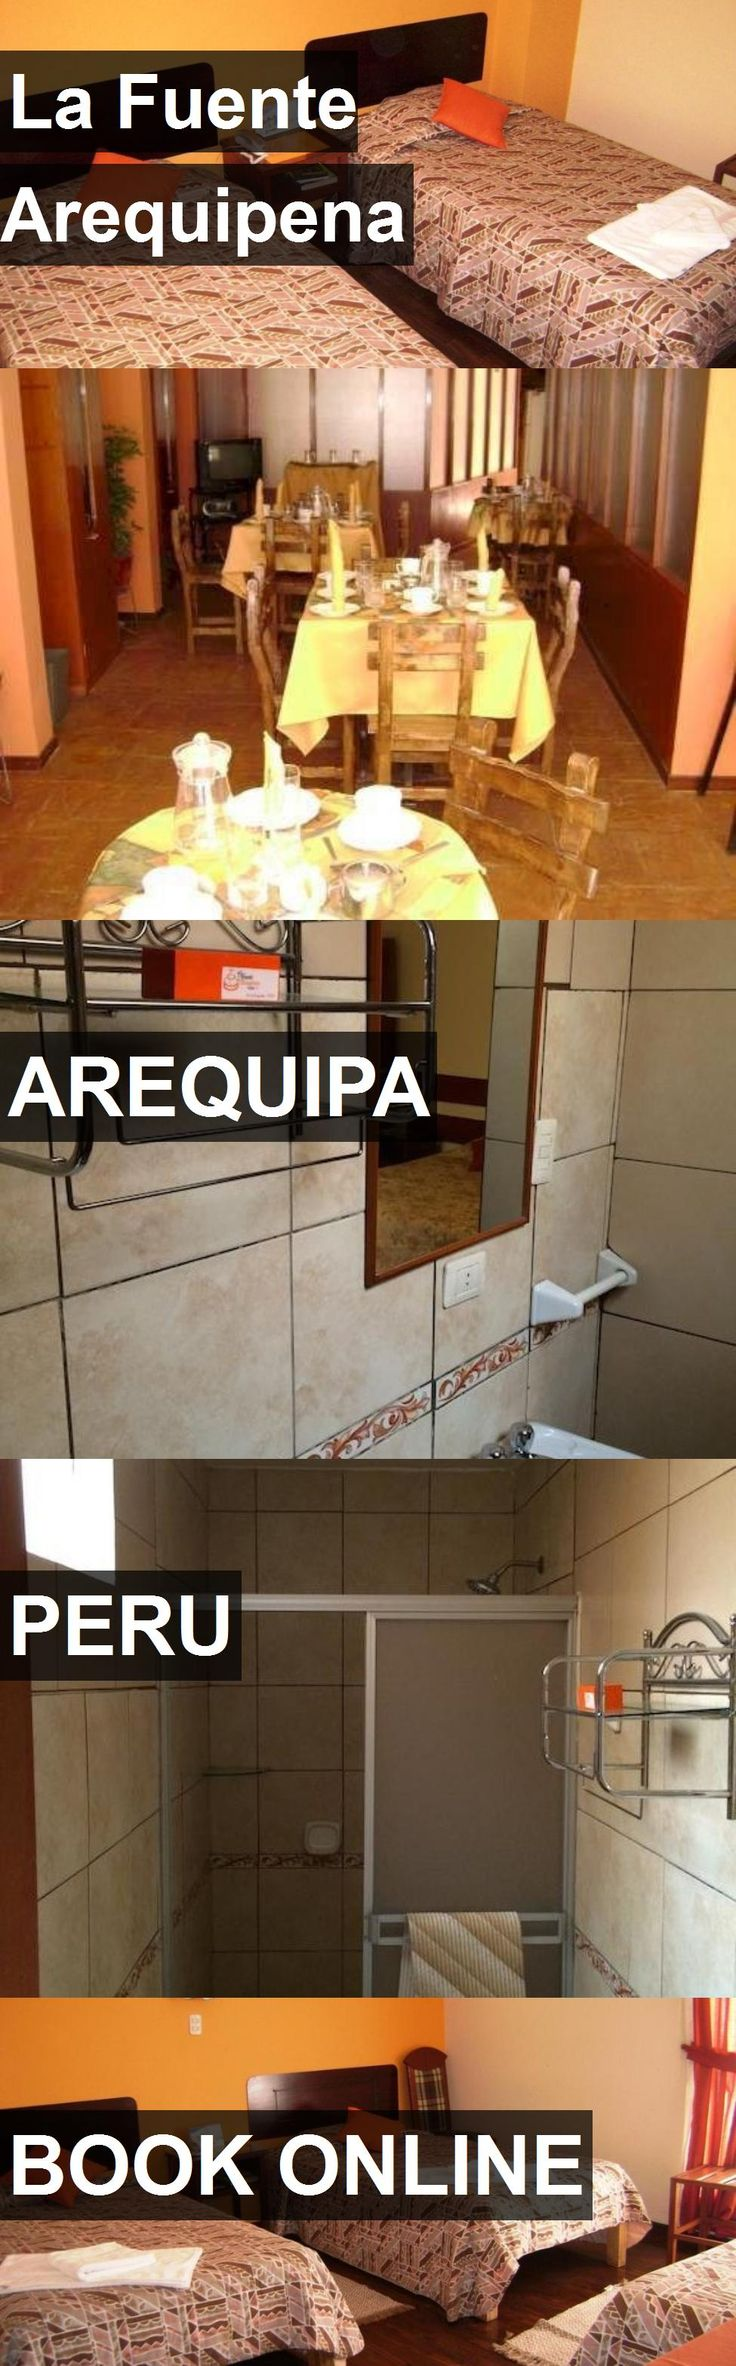 Hotel La Fuente Arequipena in Arequipa, Peru. For more information, photos, reviews and best prices please follow the link. #Peru #Arequipa #LaFuenteArequipena #hotel #travel #vacation